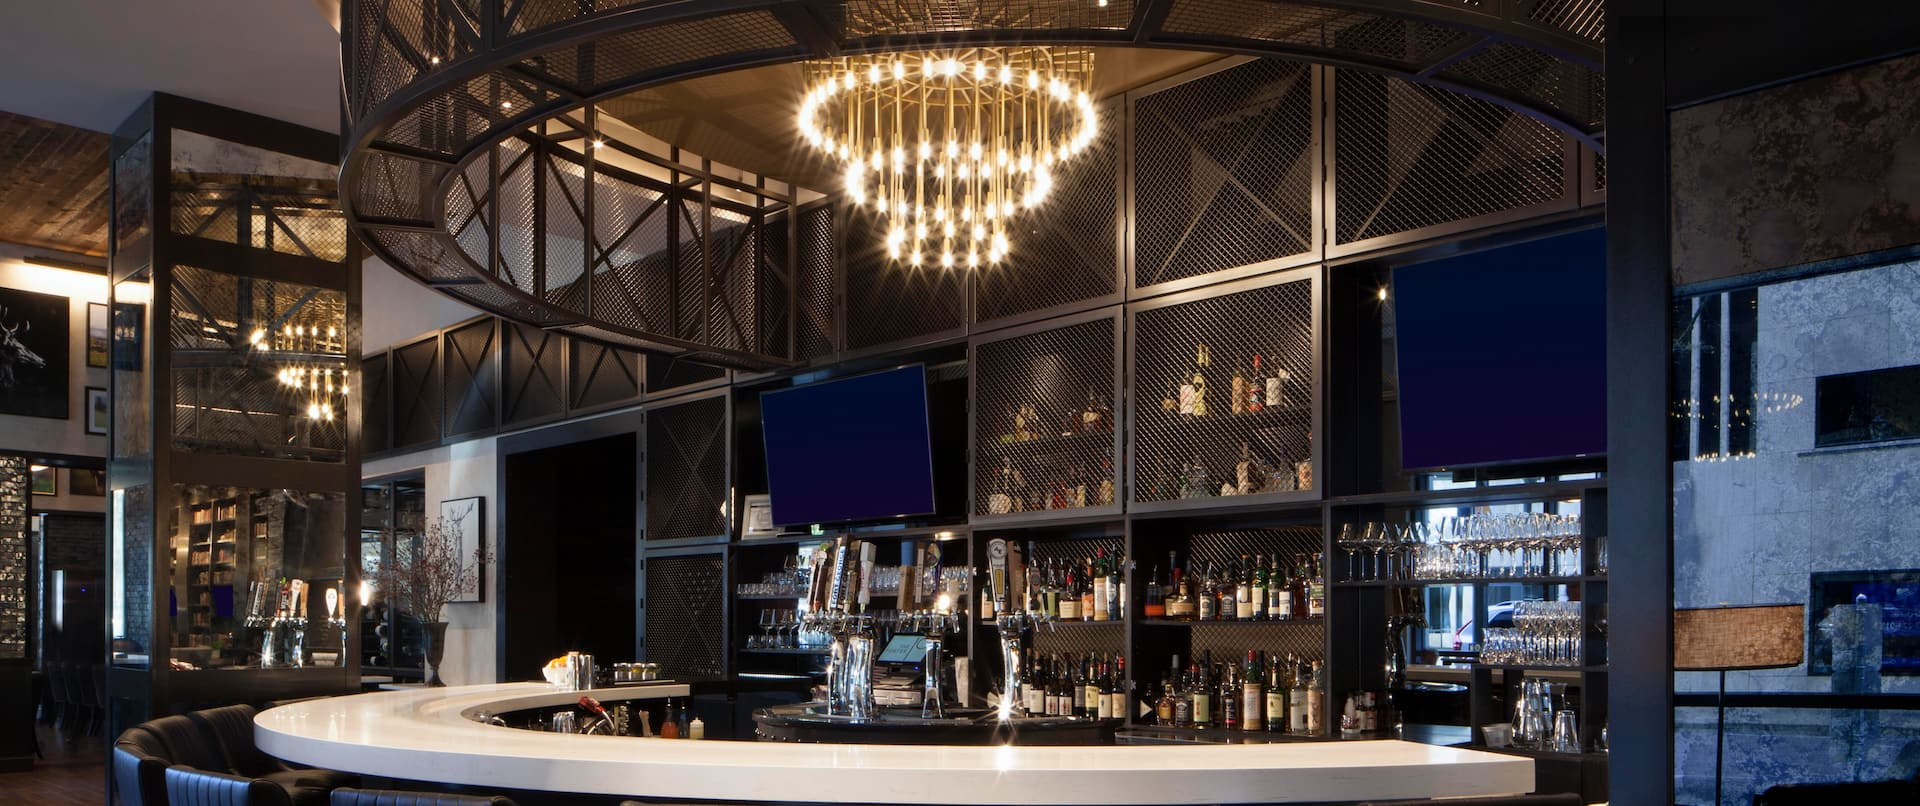 Bar area with stools